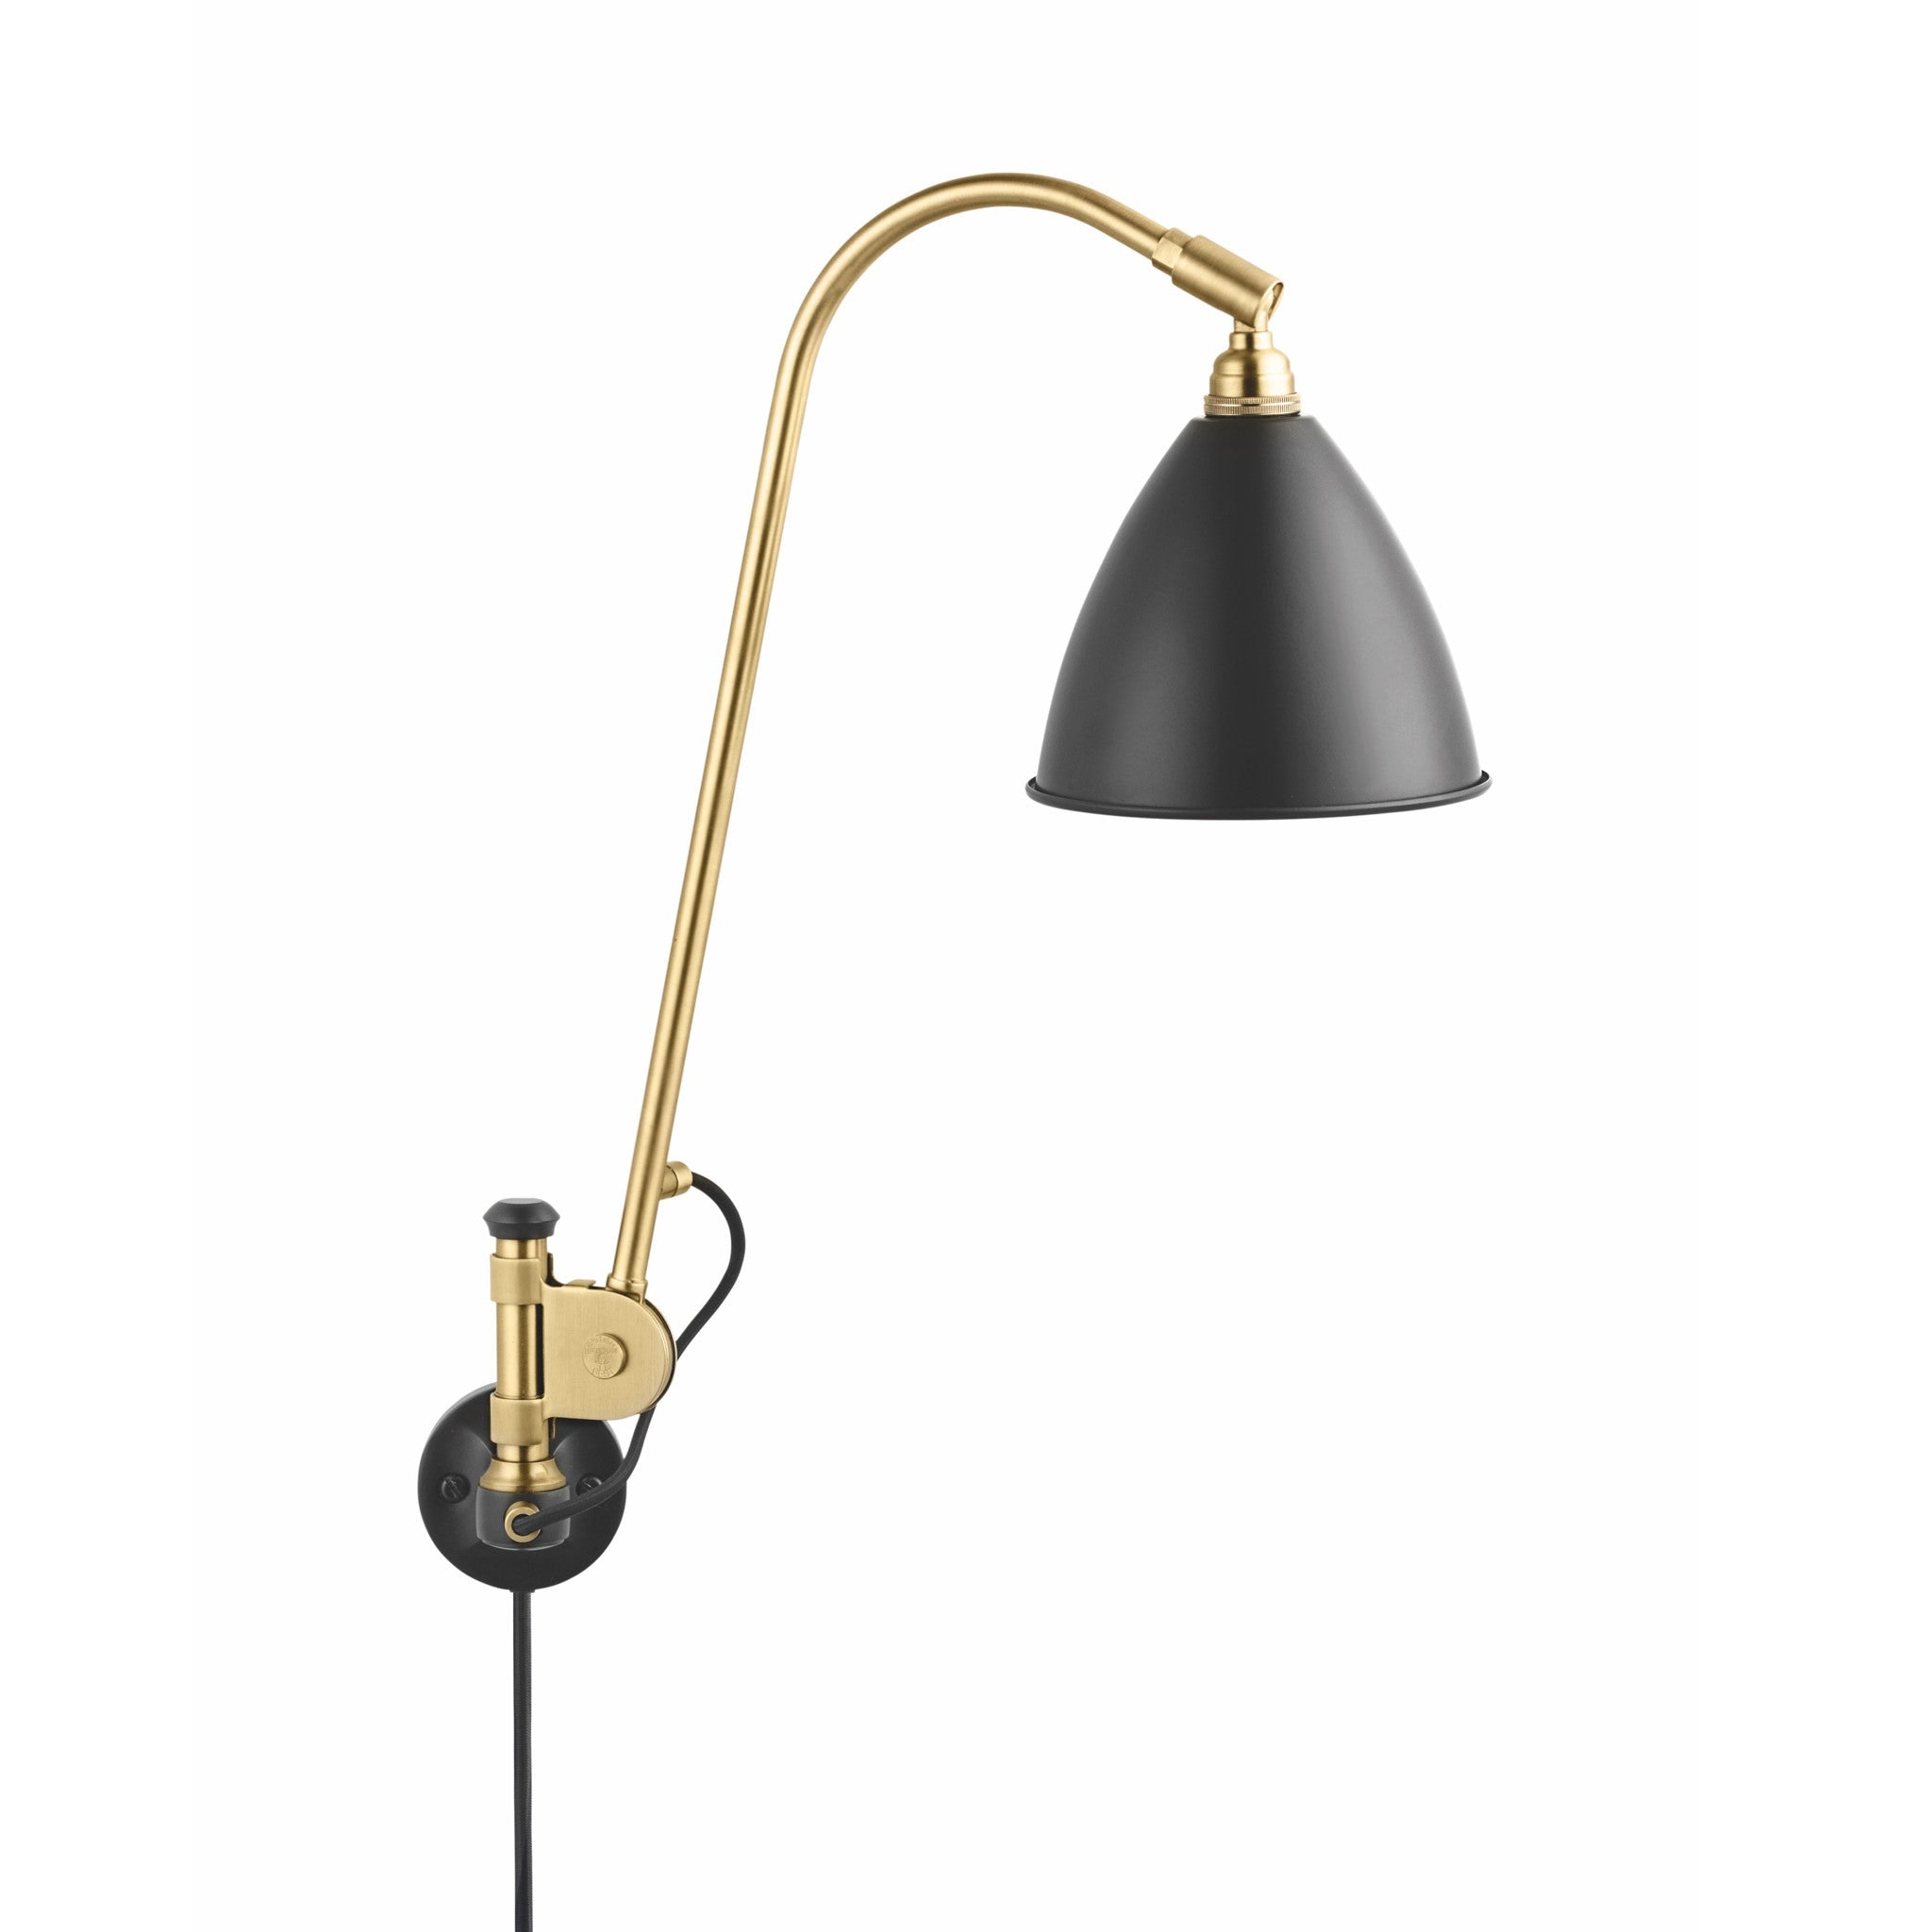 Bestlite BL6 Brass with Cable and Switch by Gubi